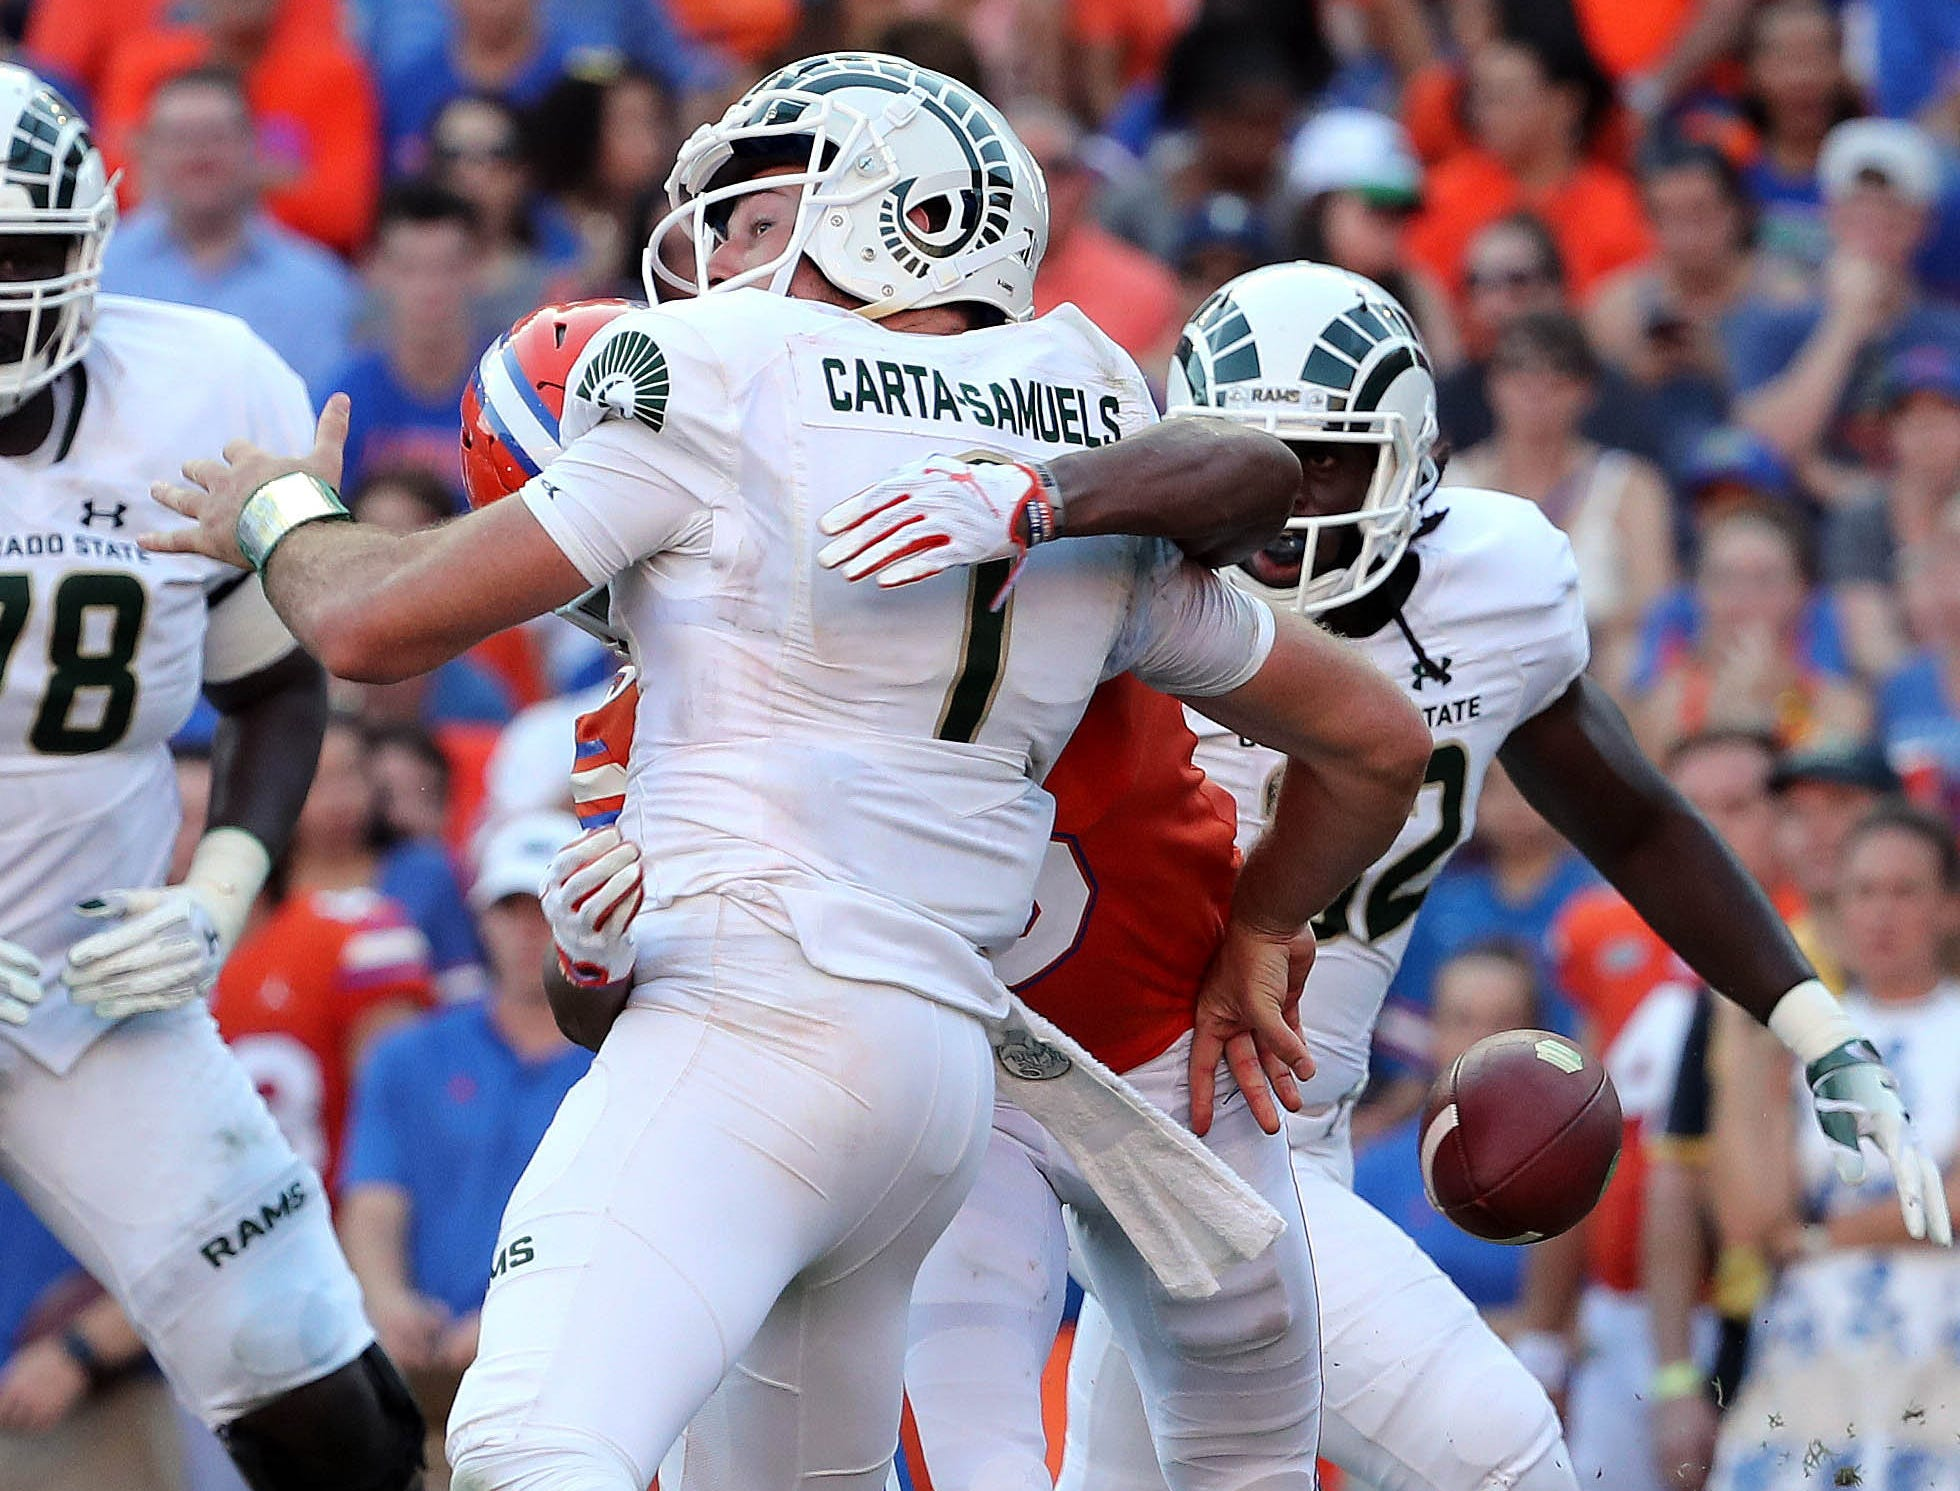 Sep 15, 2018; Gainesville, FL, USA;Florida Gators defensive back CJ Henderson (5) forces Colorado State Rams quarterback K.J. Carta-Samuels (1) to fumble the ball  during the second half at Ben Hill Griffin Stadium. Mandatory Credit: Kim Klement-USA TODAY Sports